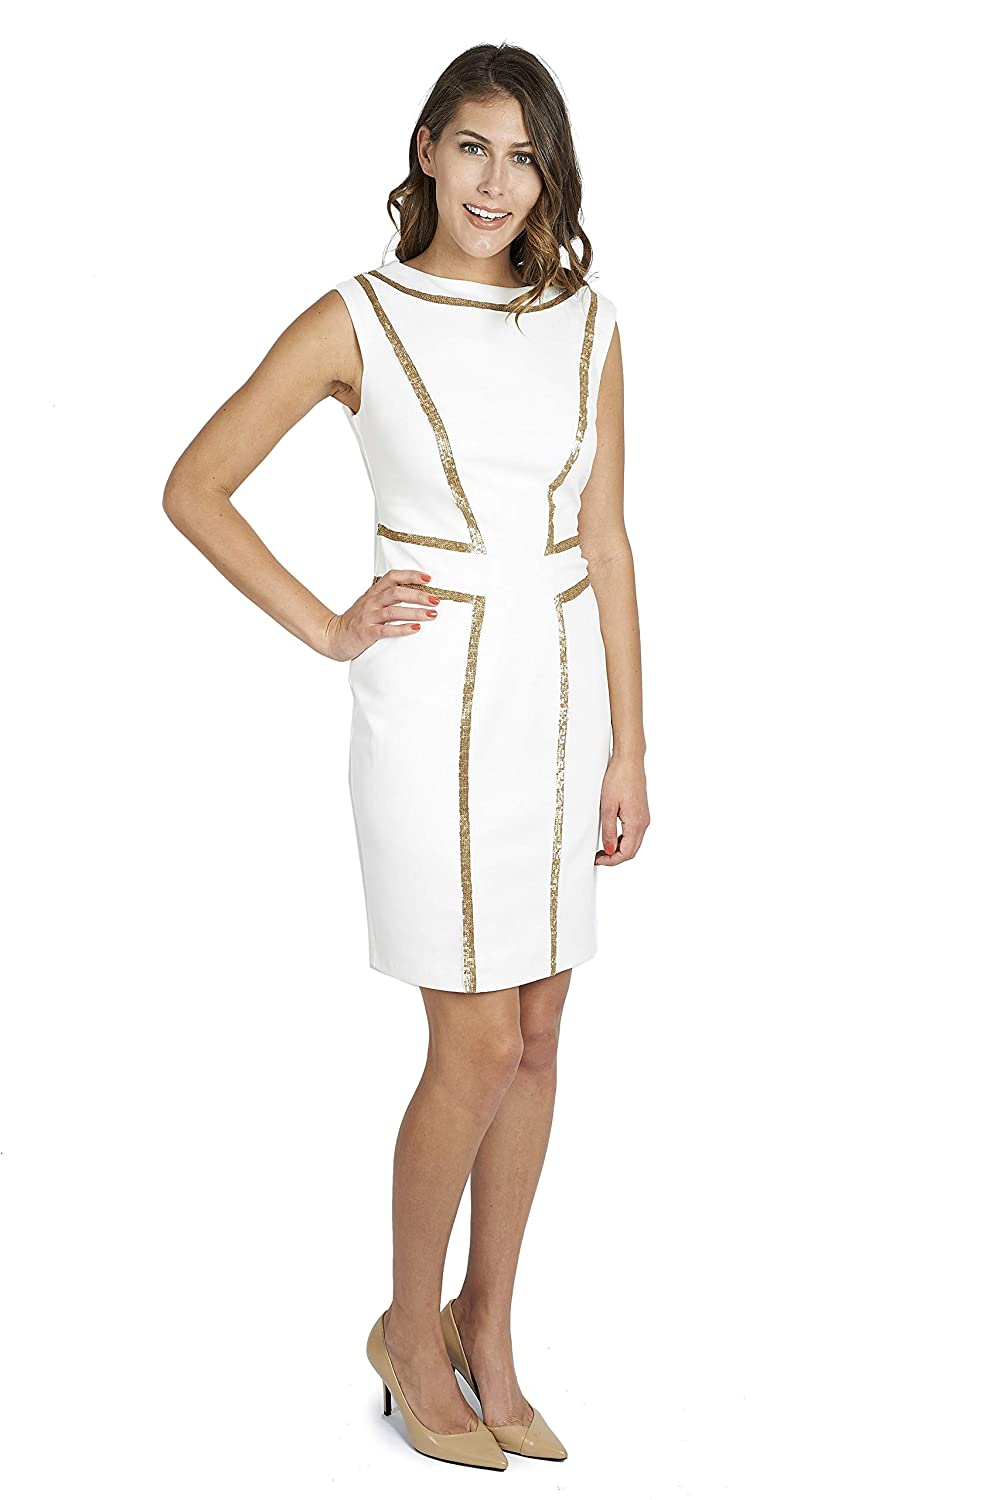 Joseph Ribkoff Dress with Golden Sequin Pattern Style 171412 at Amazon Womens Clothing store: